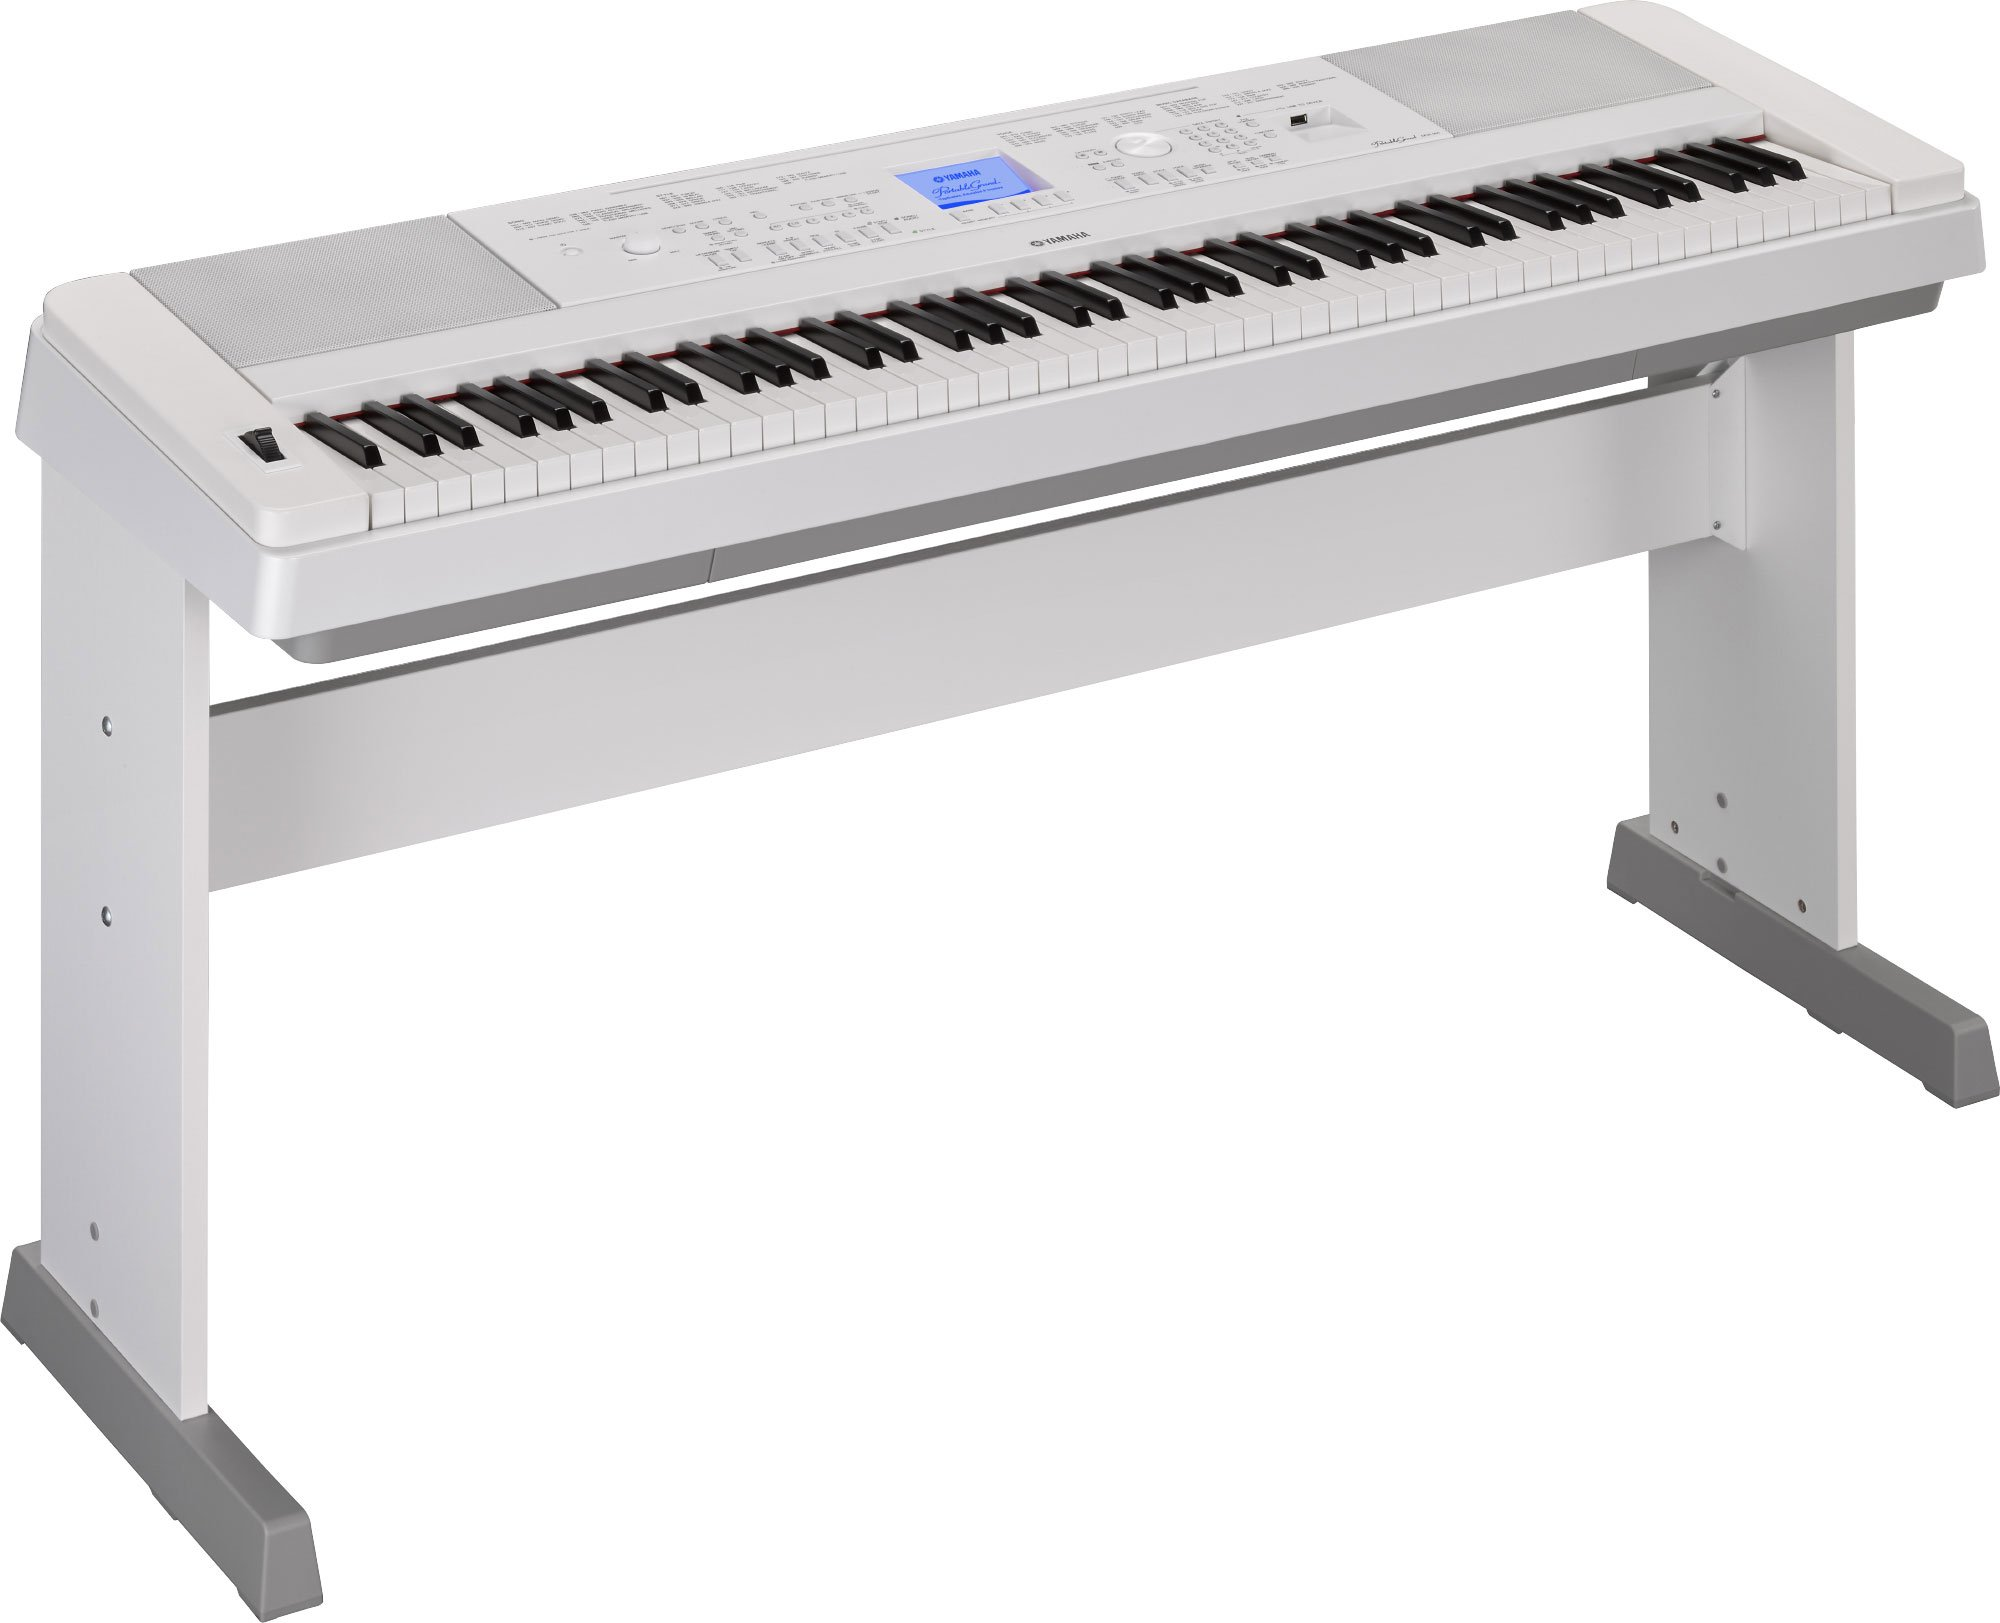 Yamaha DGX660B 88-Key Weighted Digital Piano with Furniture Stand, White by YAMAHA